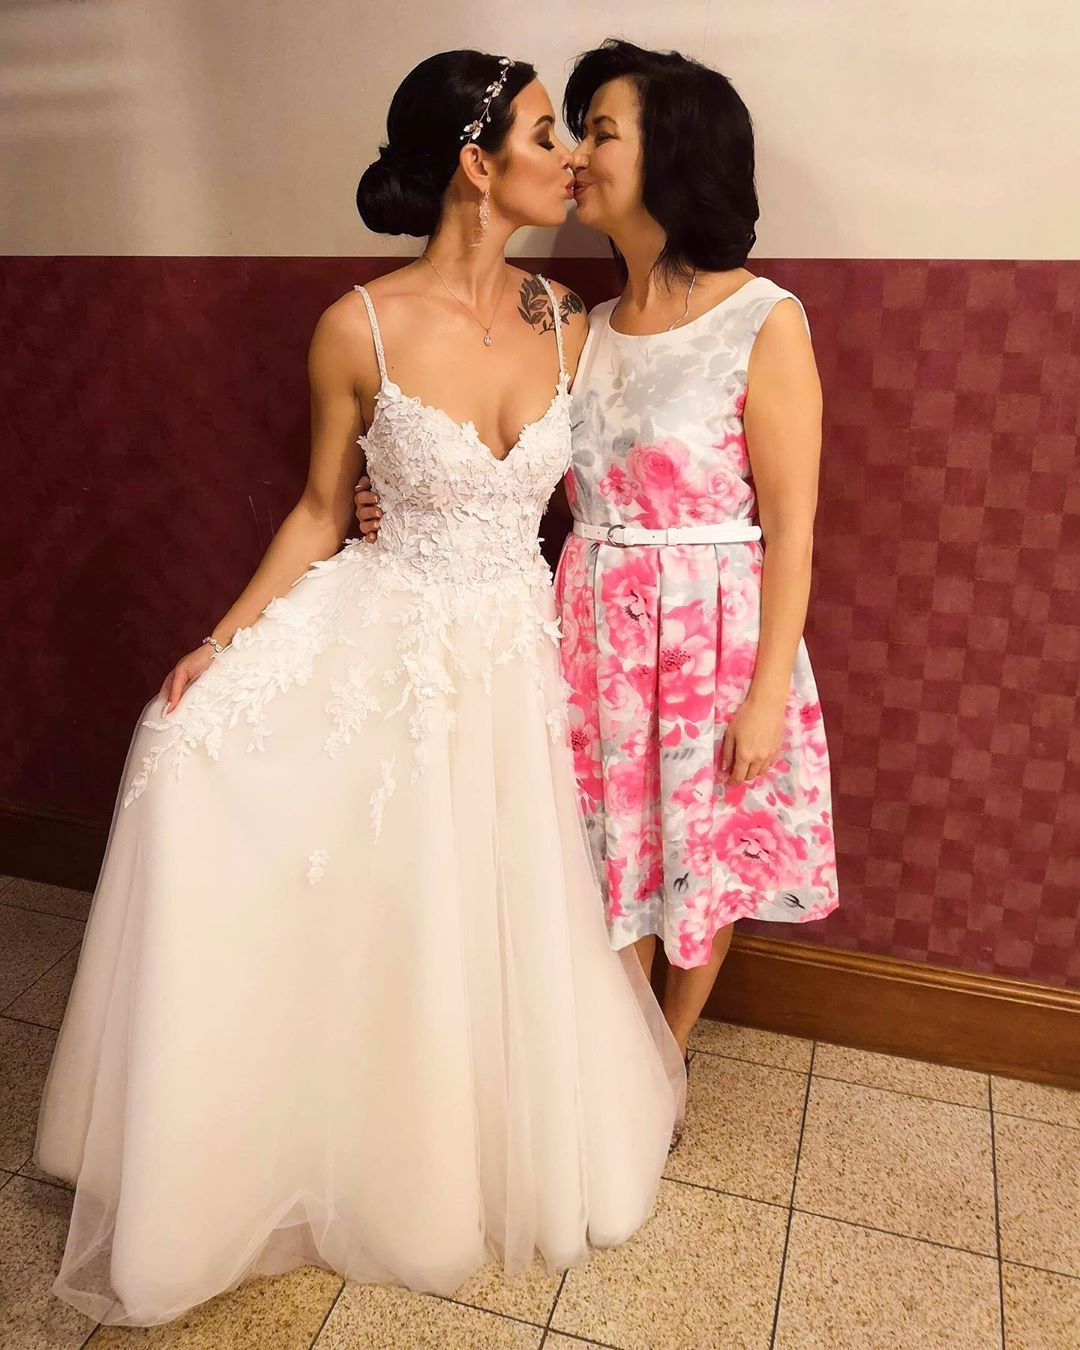 A Bride With Hairstyle And Make Up In Gorgeous Pink Wedding Dress